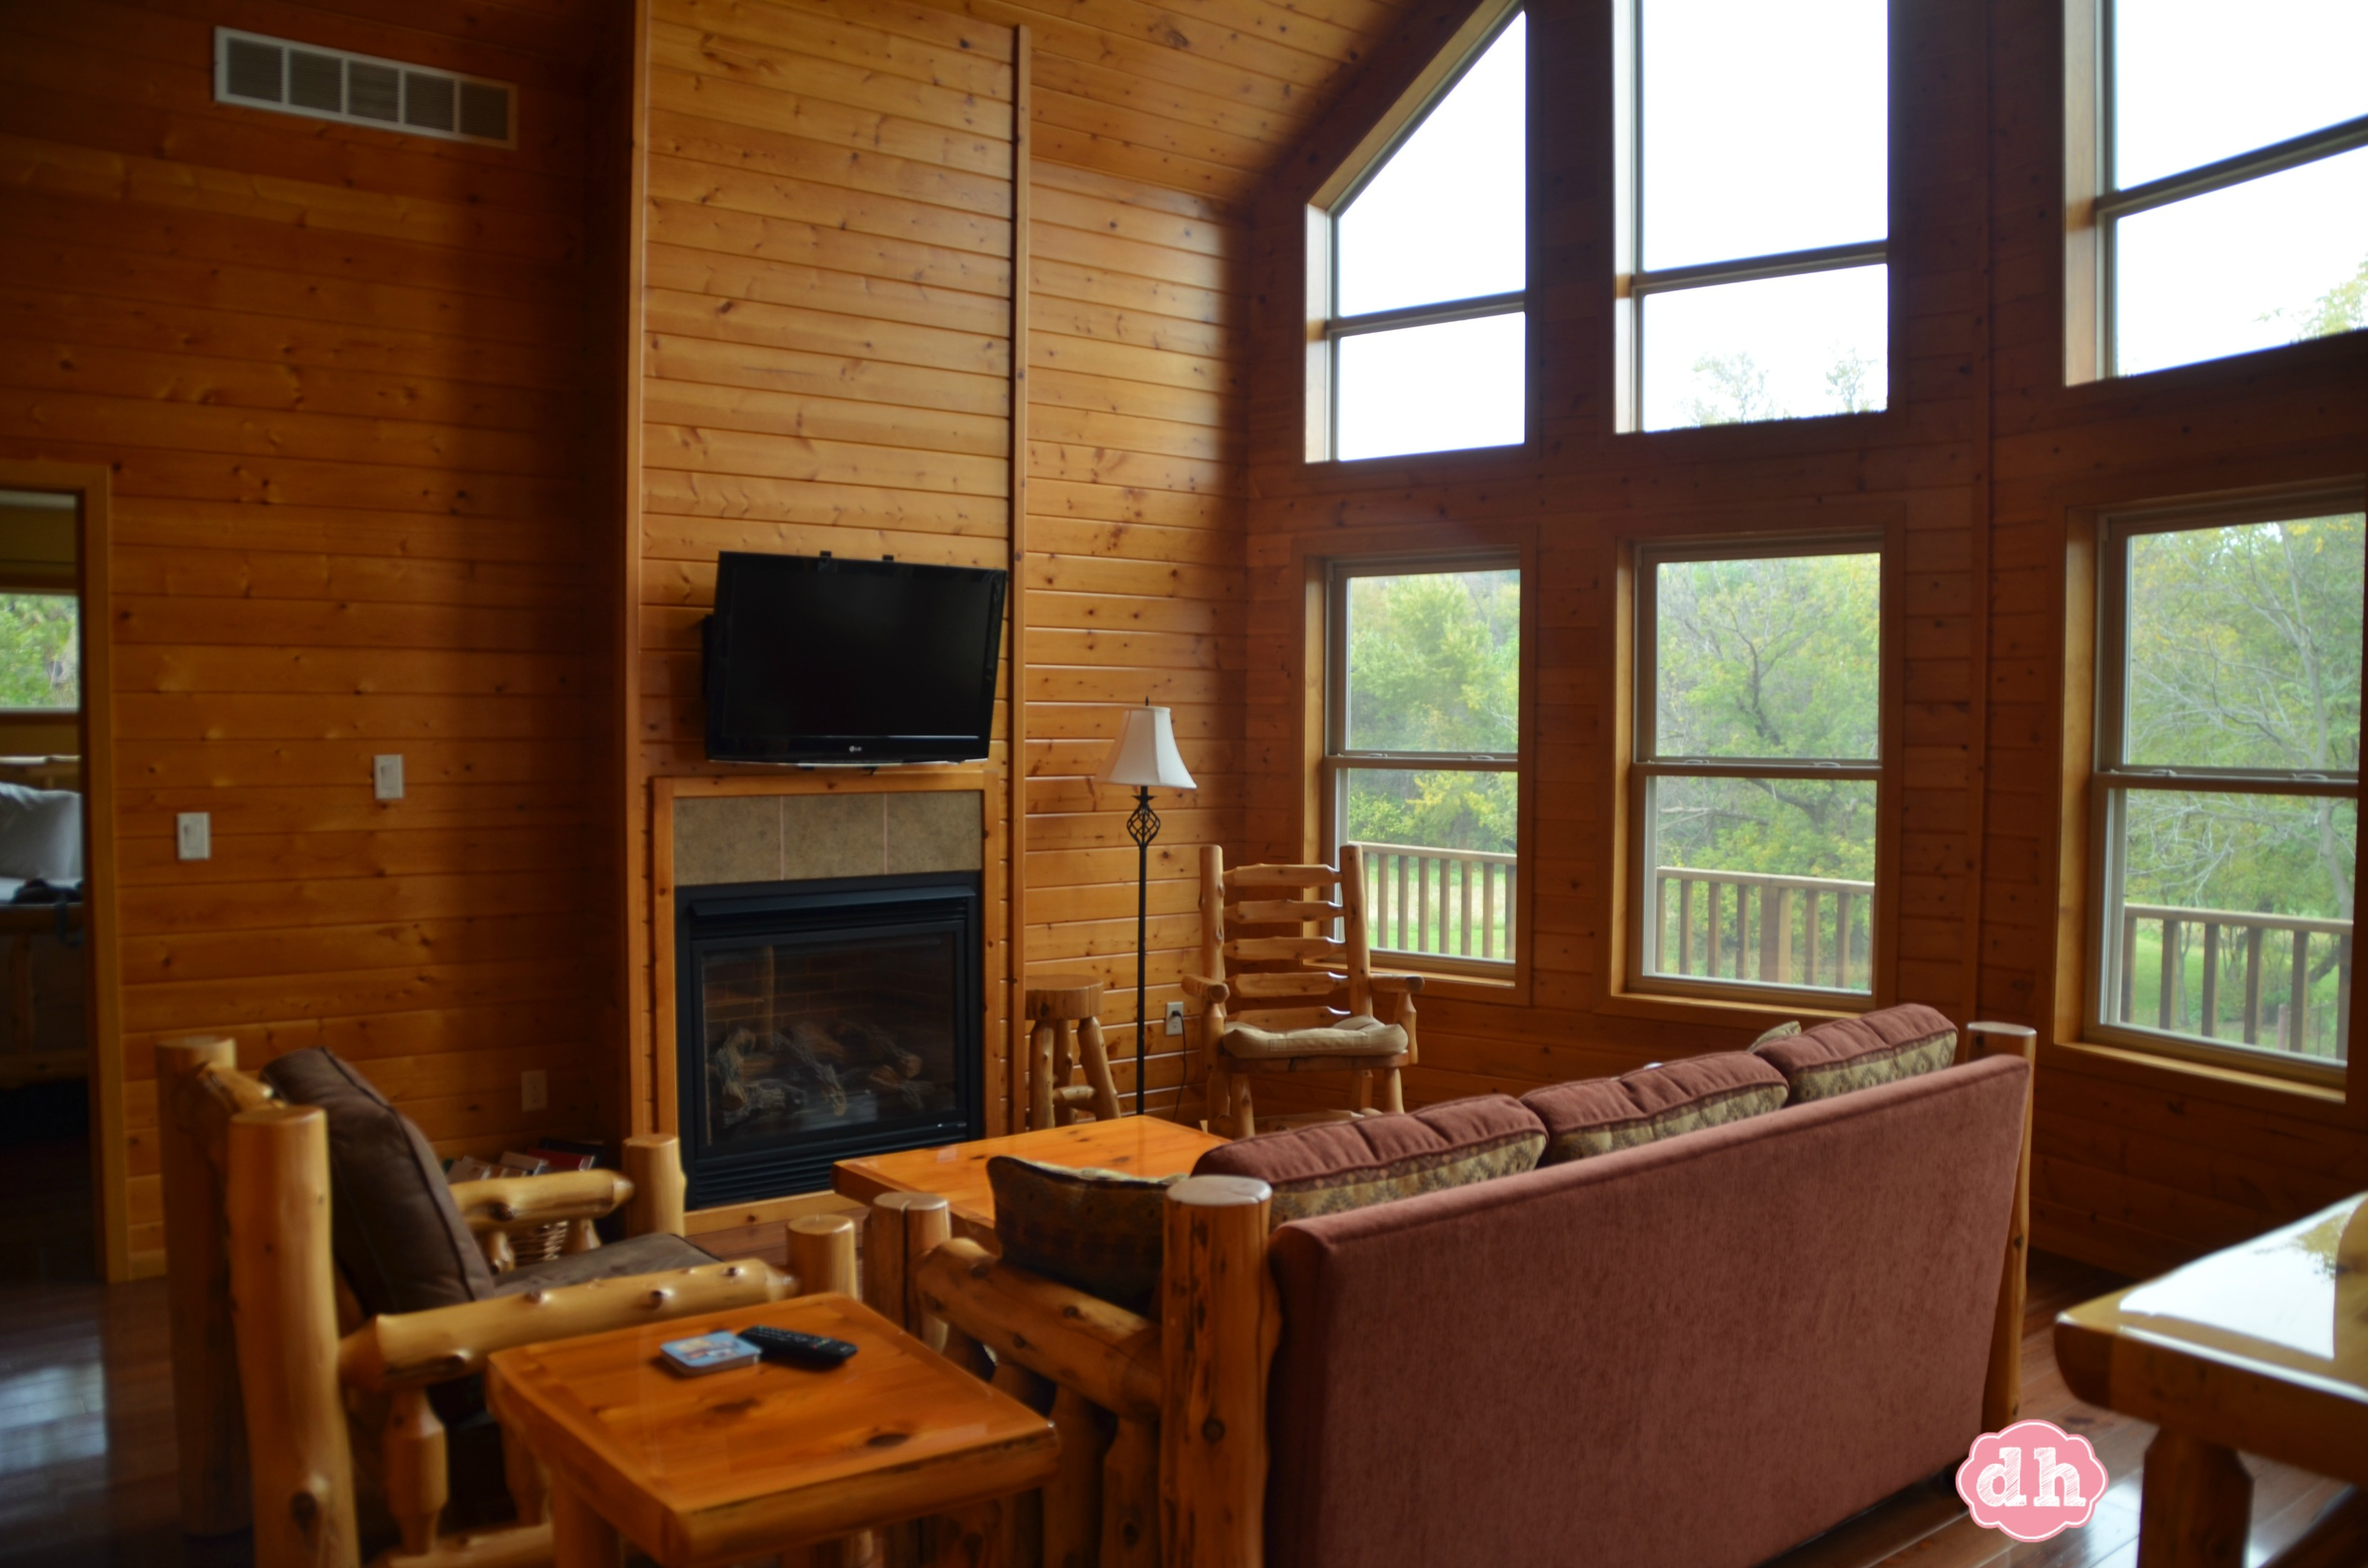 Red Cedar Lodge in Charles City, IA #travel #CharlesCityIA